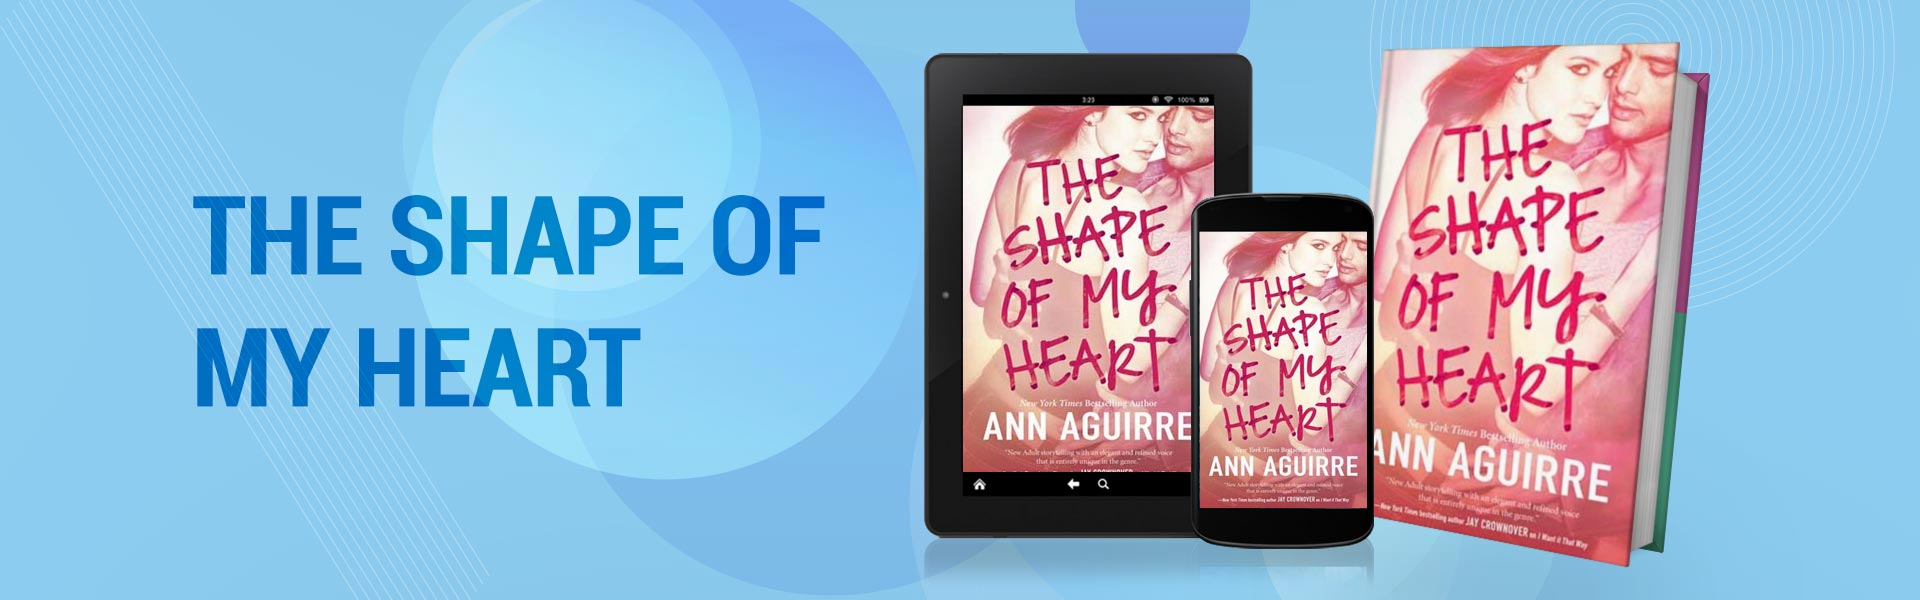 THE-SHAPE-OF-MY-HEART